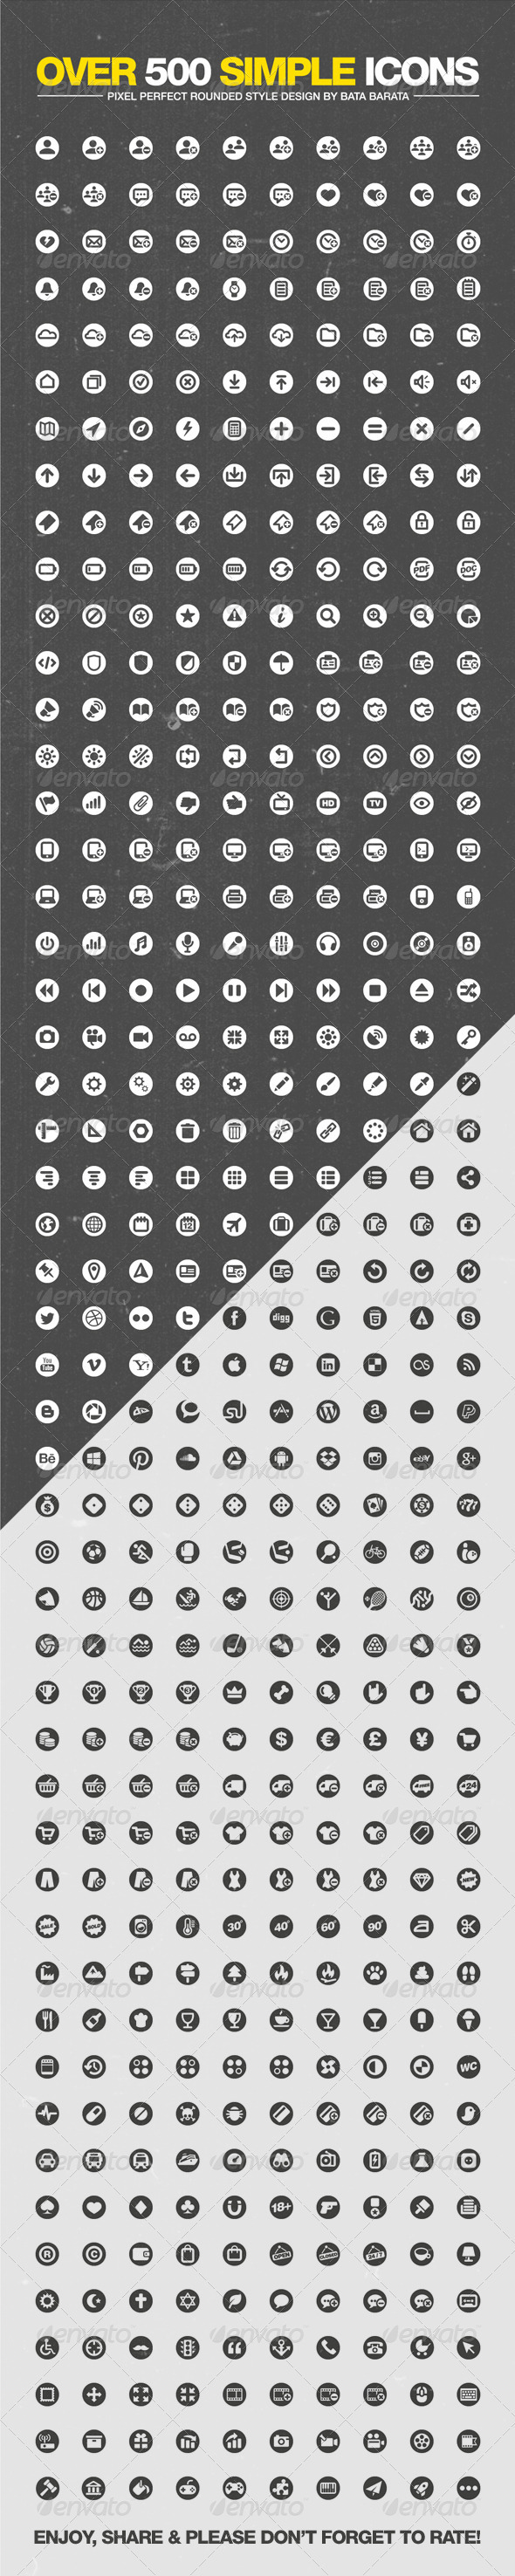 GraphicRiver Over 500 Simple Icons 3334758